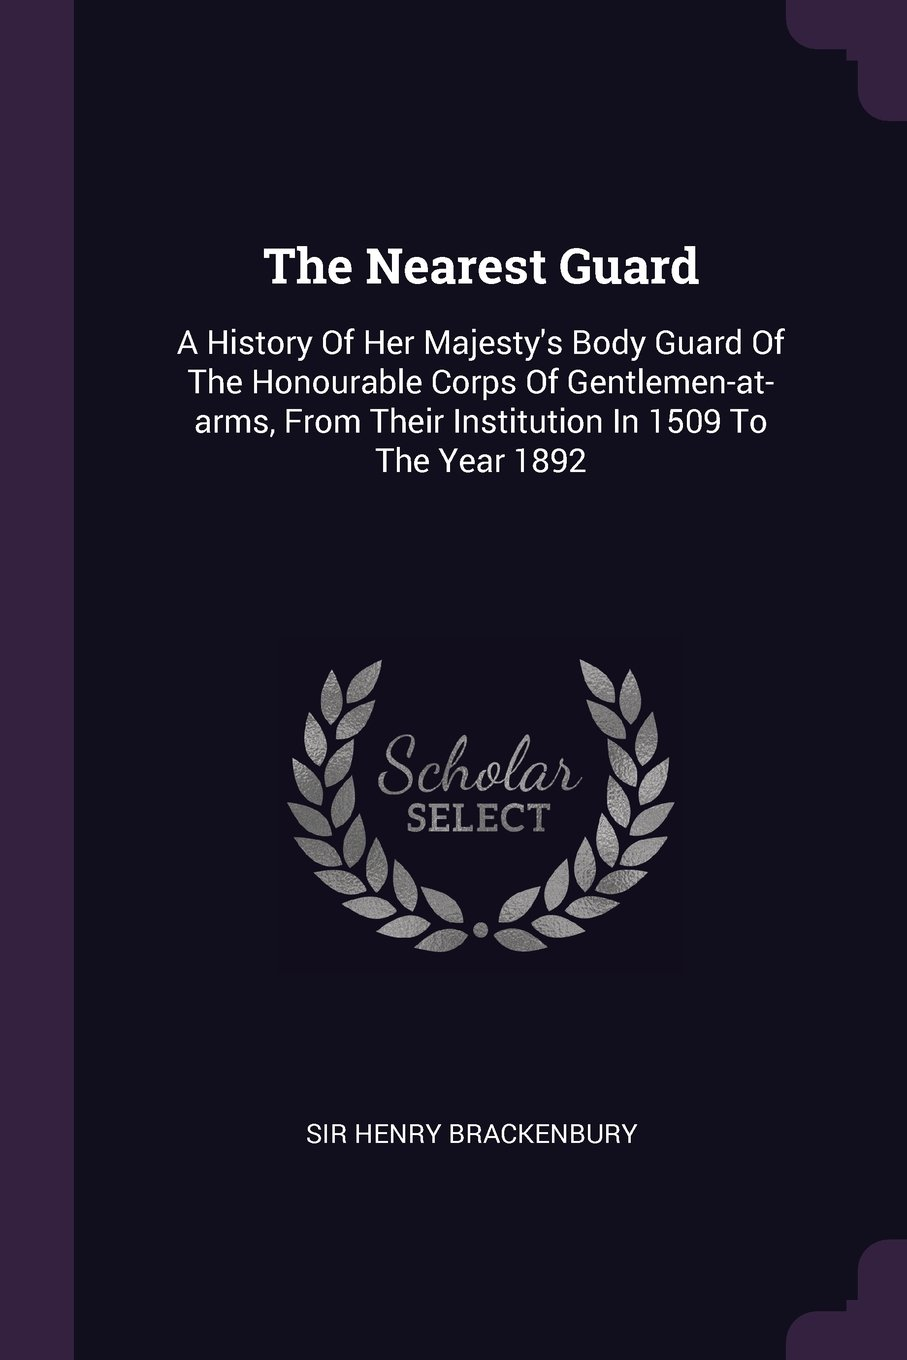 The Nearest Guard: A History Of Her Majesty's Body Guard Of The Honourable Corps Of Gentlemen-at-arms, From Their Institution In 1509 To The Year 1892 pdf